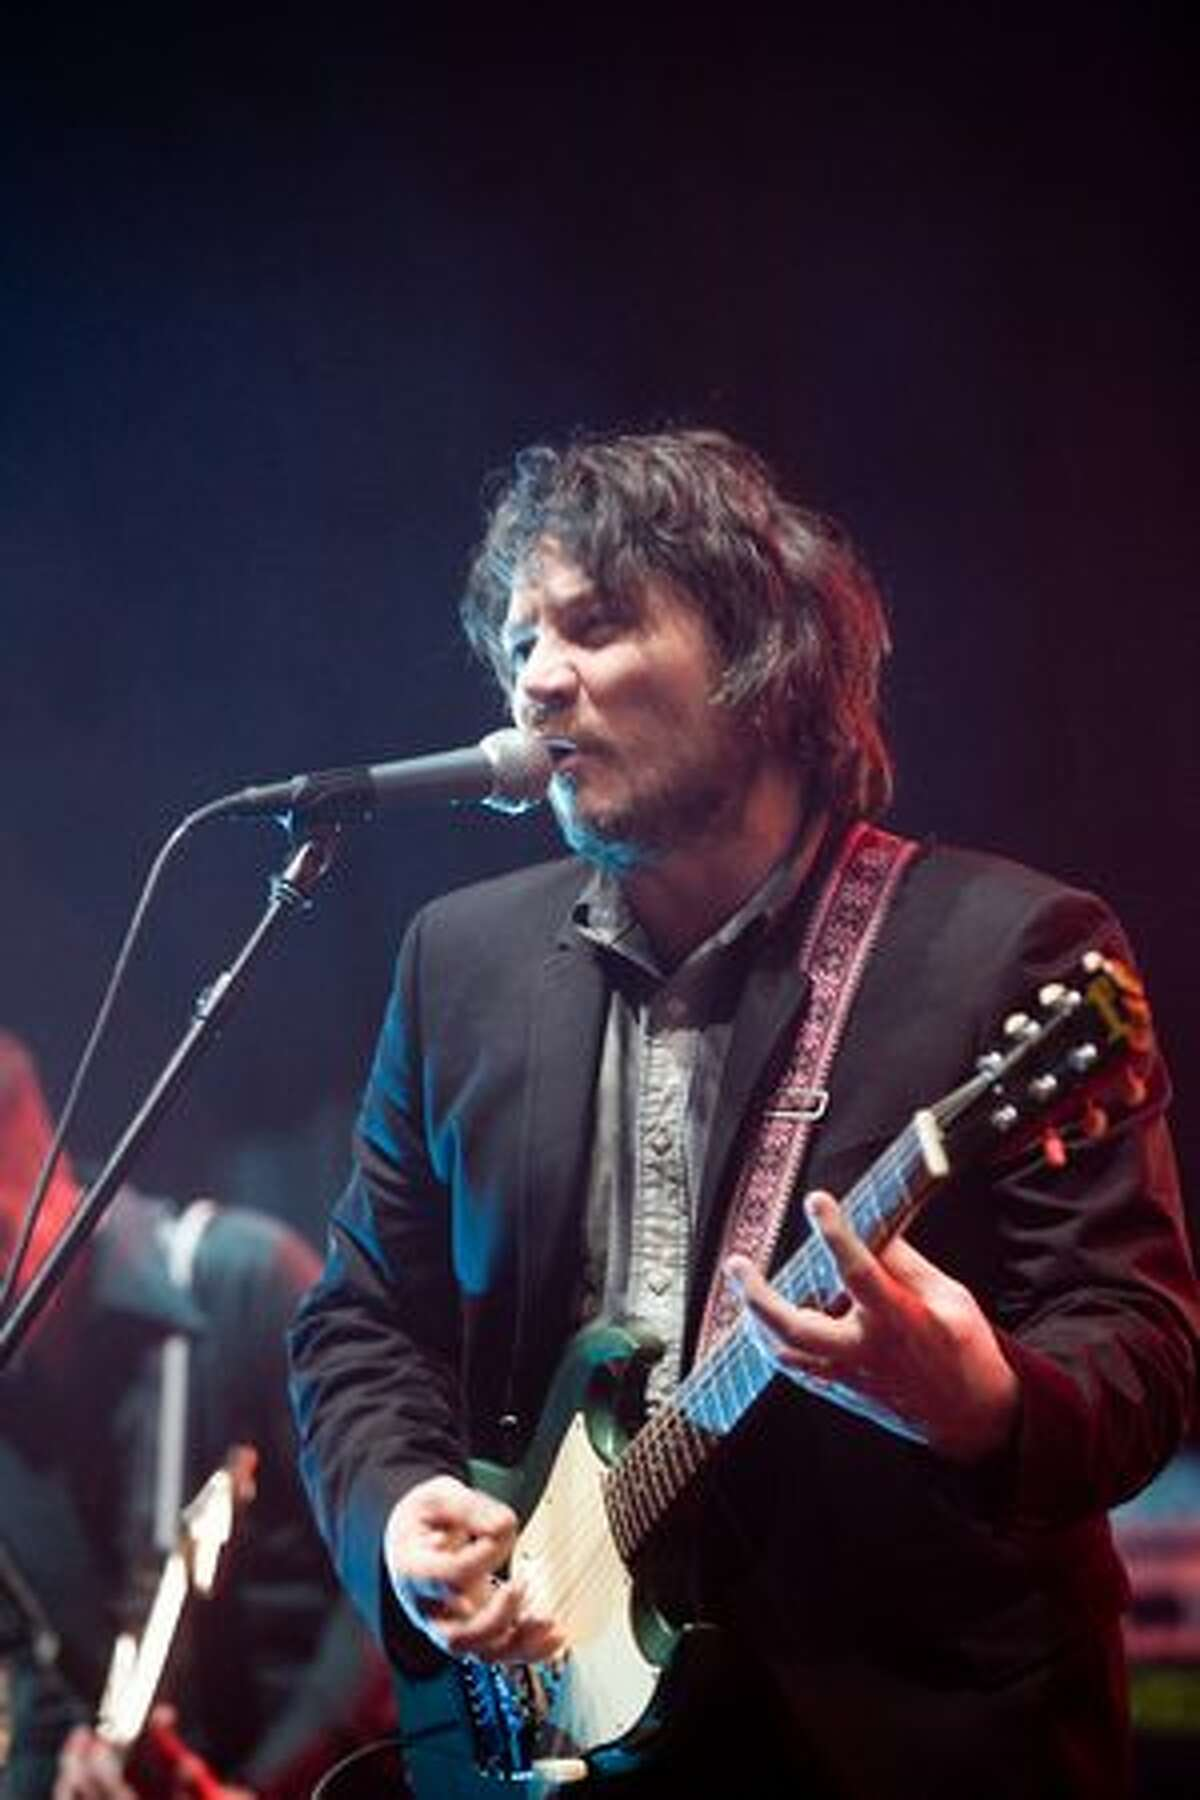 Front man Jeff Tweedy of Wilco performing at the Paramount Theatre on Feb. 10. (Chona Kasinger/seattlepi.com)